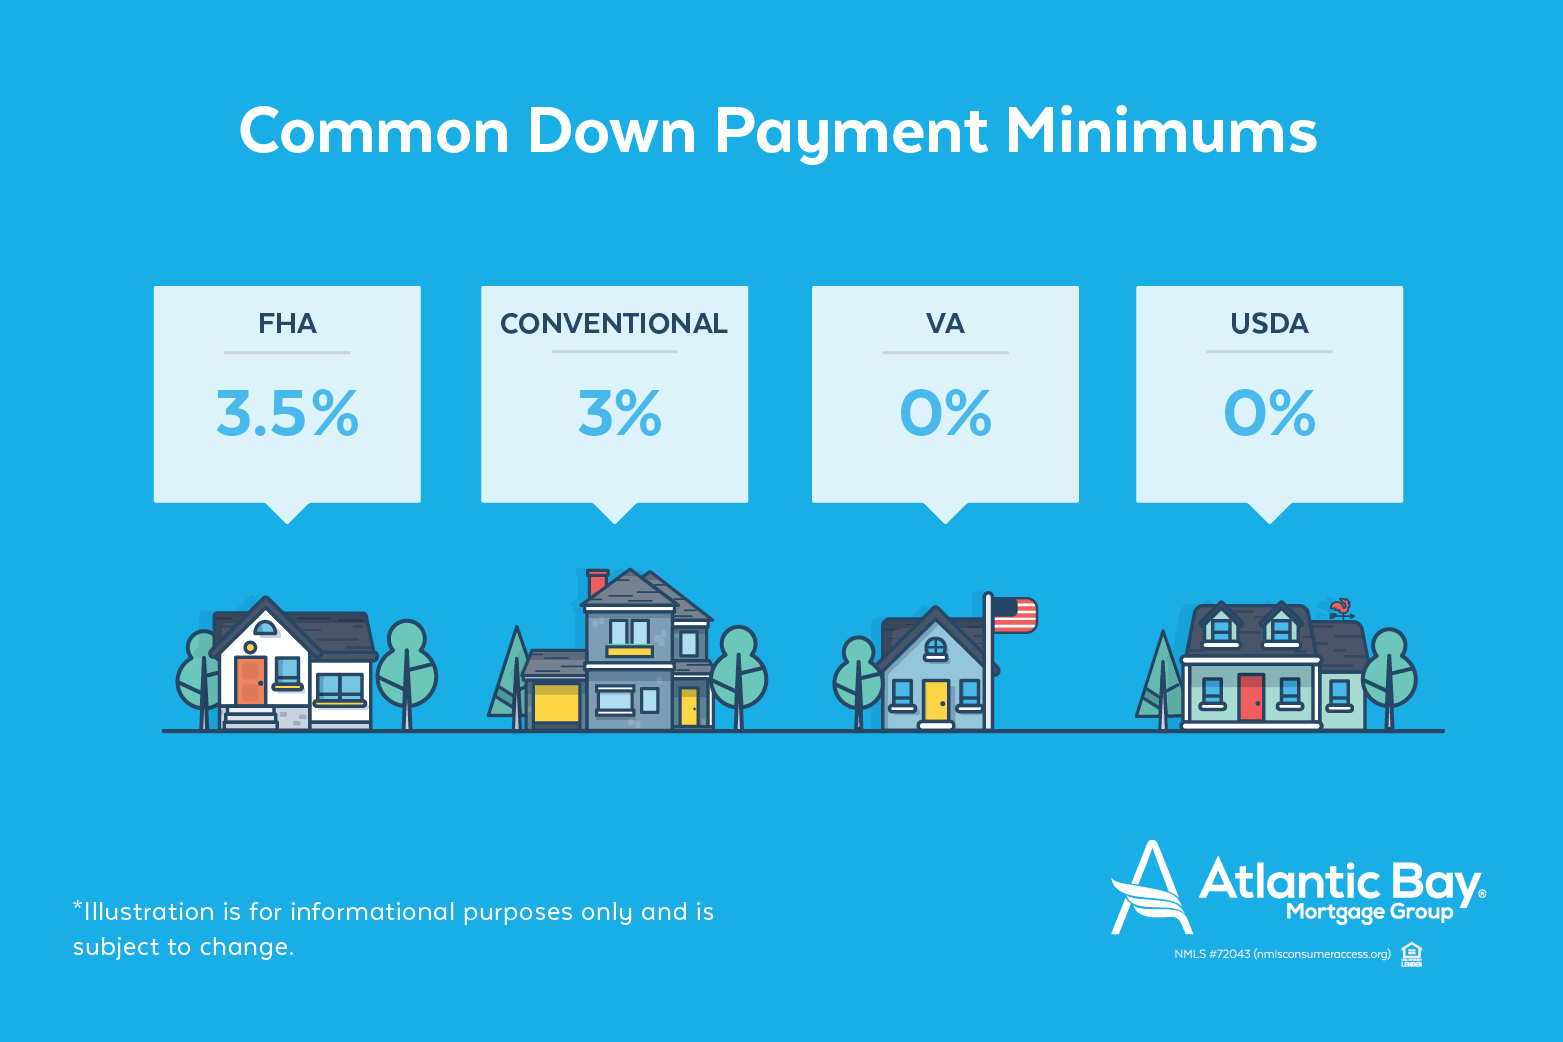 Common Down Payment Minimums